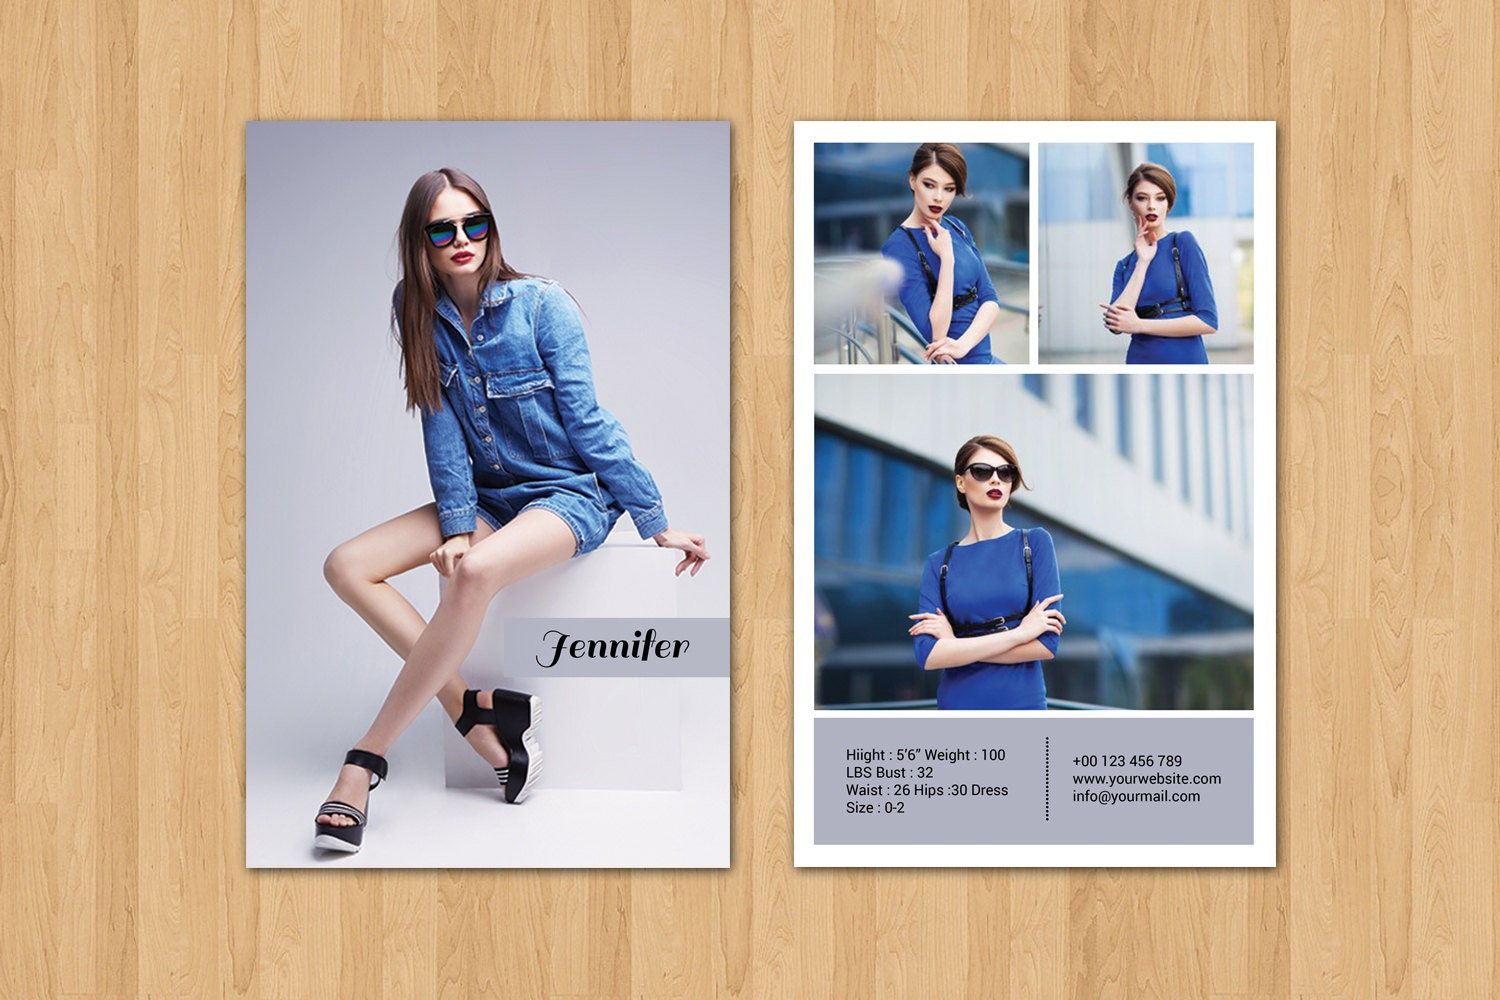 free model comp card template psd - modeling comp card template fashion model comp card